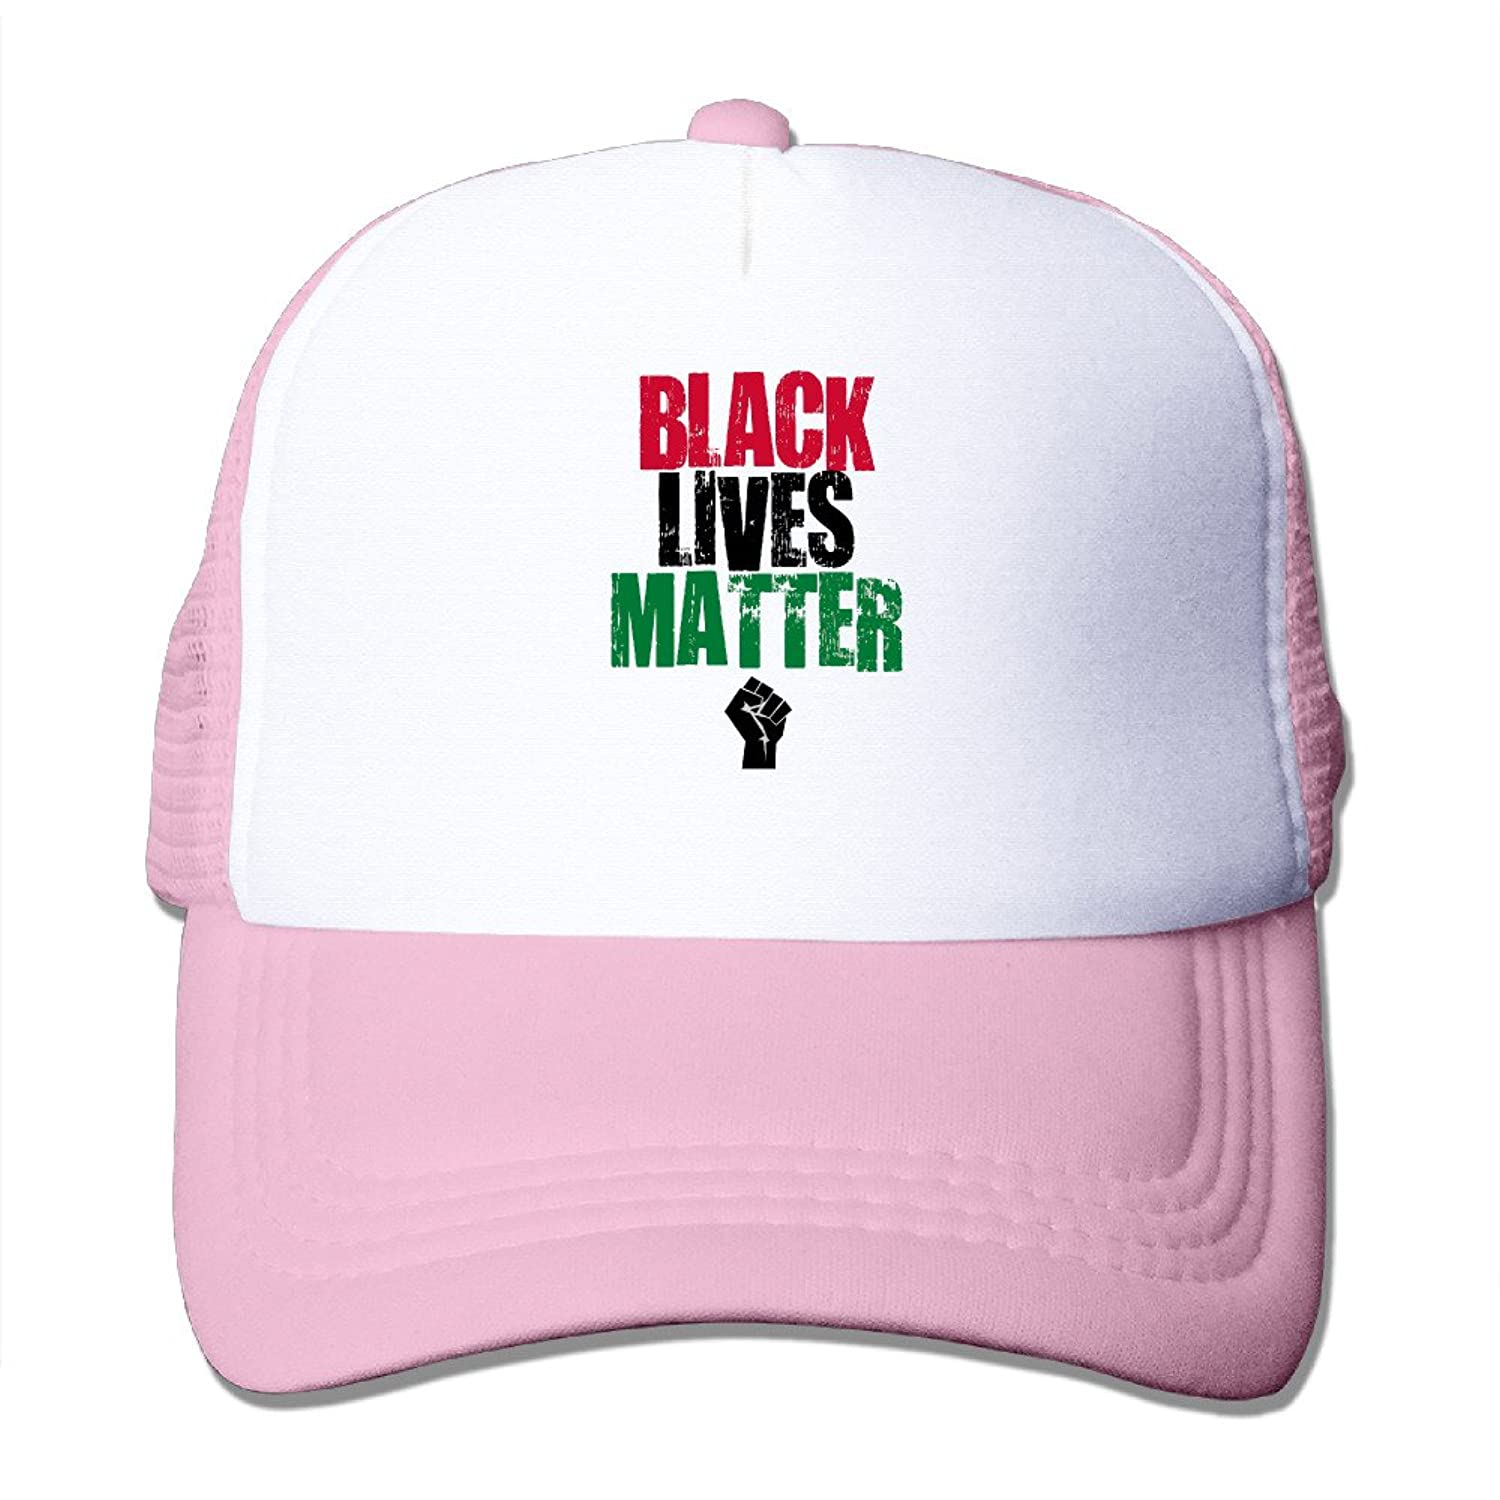 Art Black Lives Matter Logo Adult Nylon Adjustable Mesh Hat Hat Pink One Size Fits Most